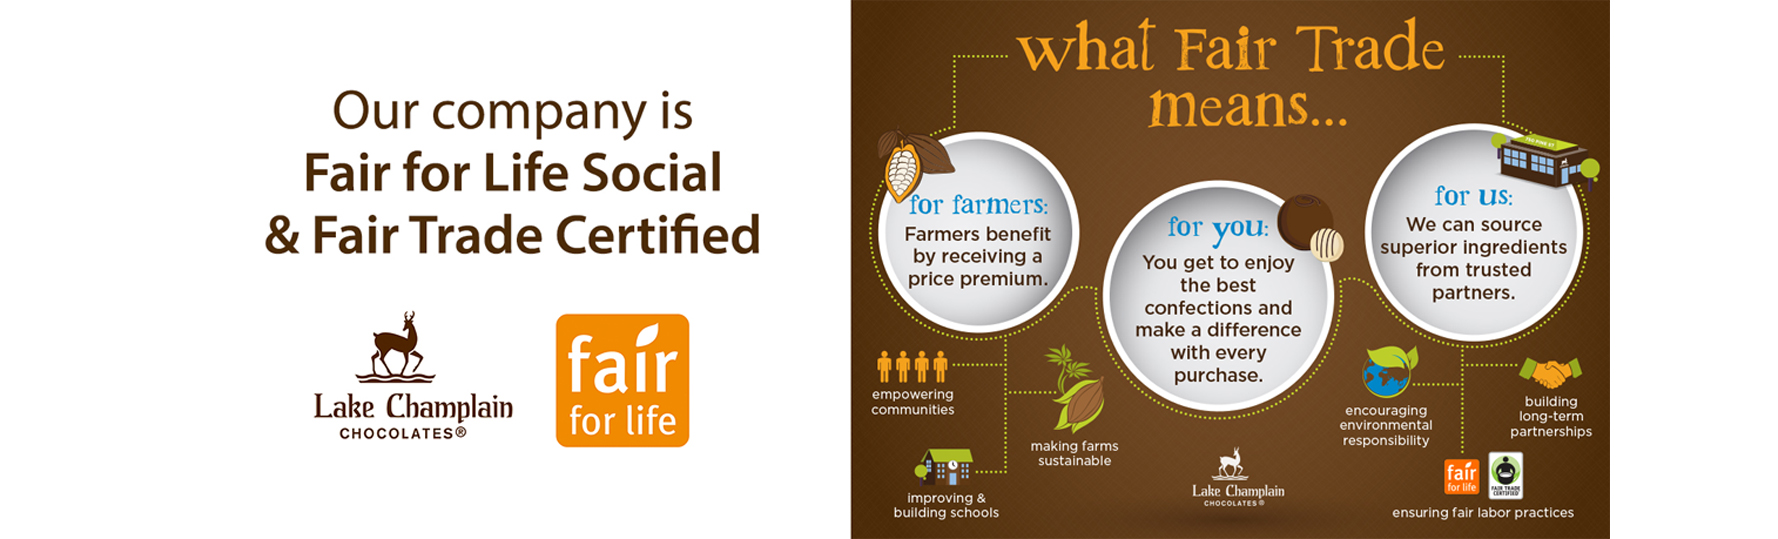 Fair for Life - Social and Fair Trade Certified Company